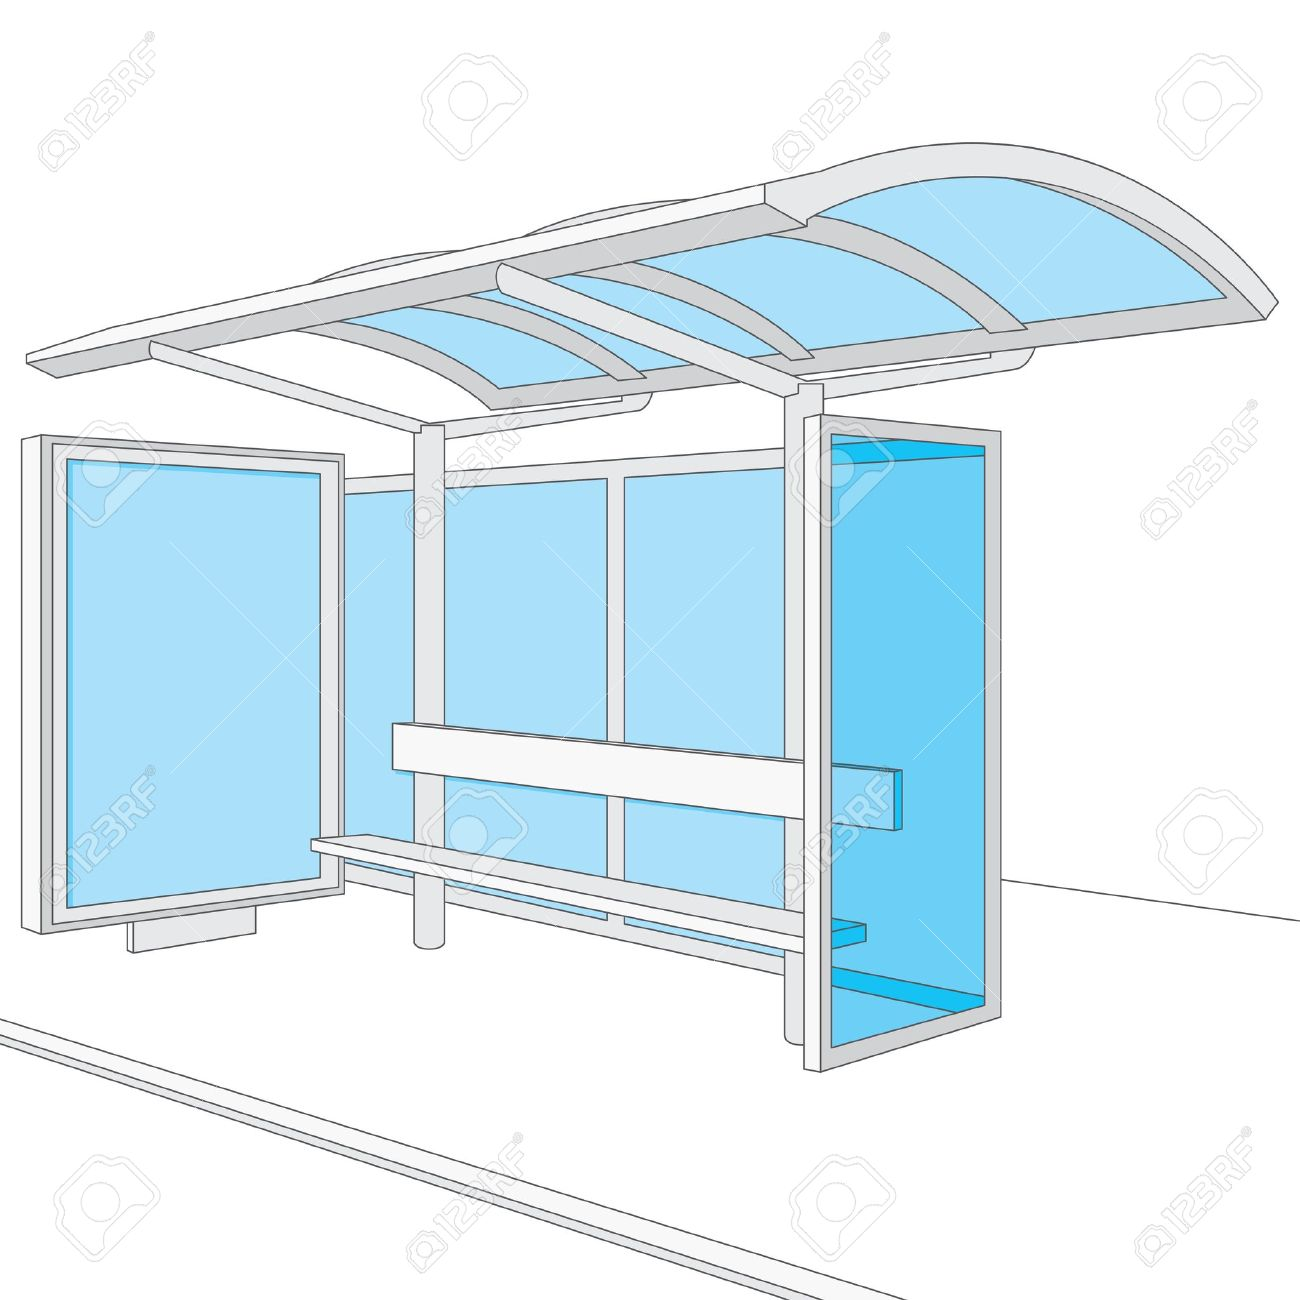 bus stop empty design template for branding royalty free cliparts